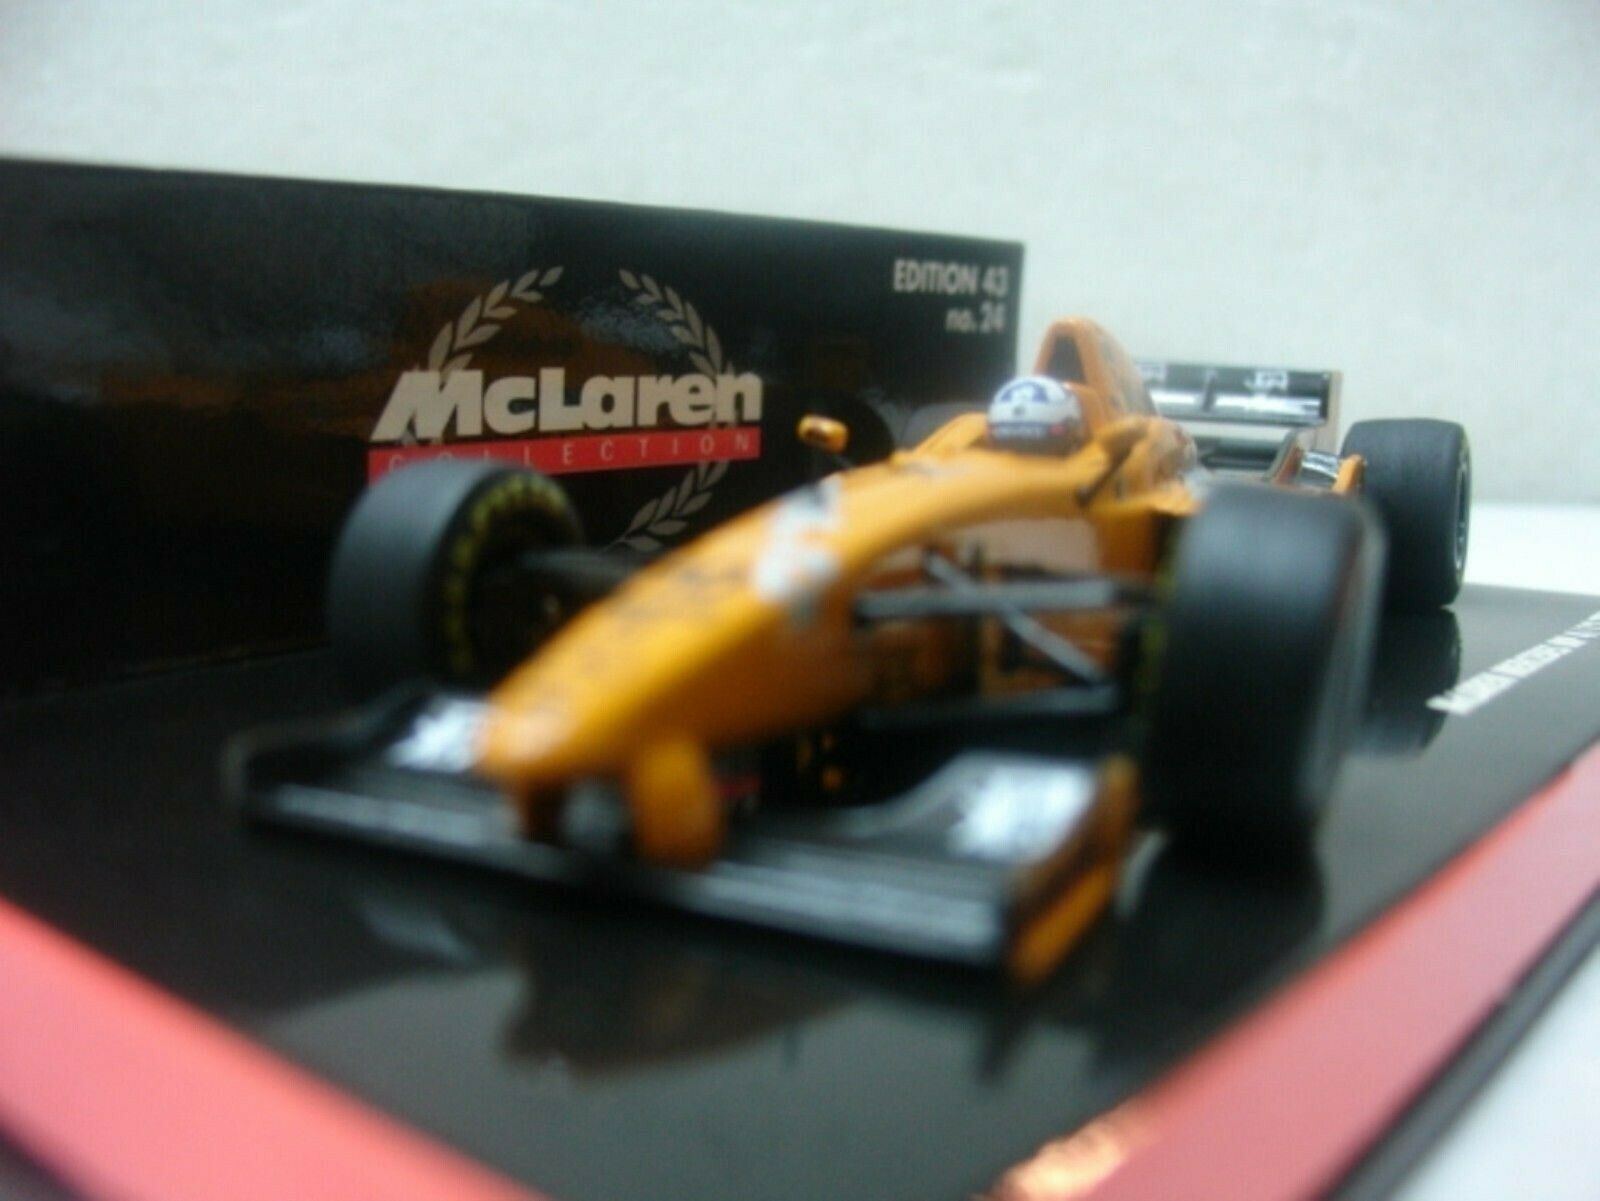 Wow extrêmement rare McLaren 1997 MP4 12 MB Coulthard Orange Jerez 1 43 Minichamps